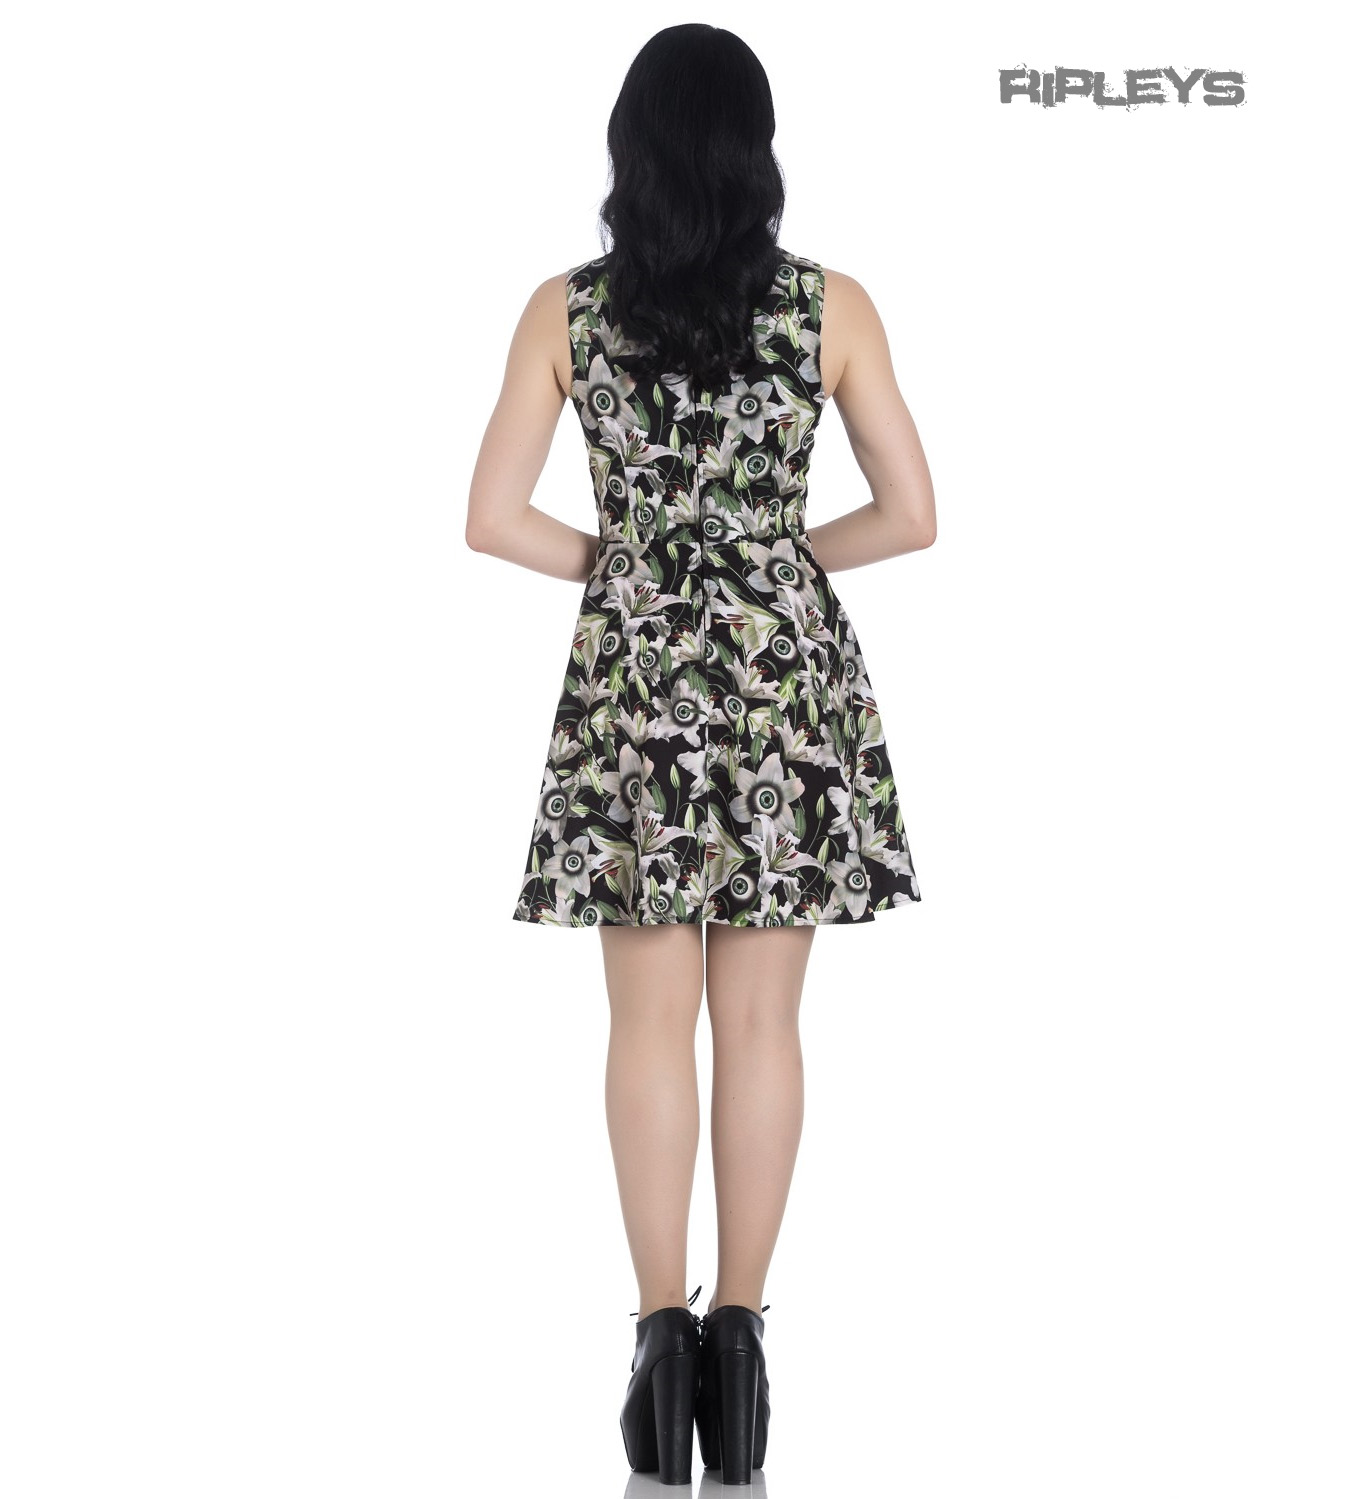 Hell-Bunny-Black-Lace-Up-Goth-Punk-Mini-Dress-PEEPERS-Eyeballs-Flowers-All-Sizes thumbnail 36